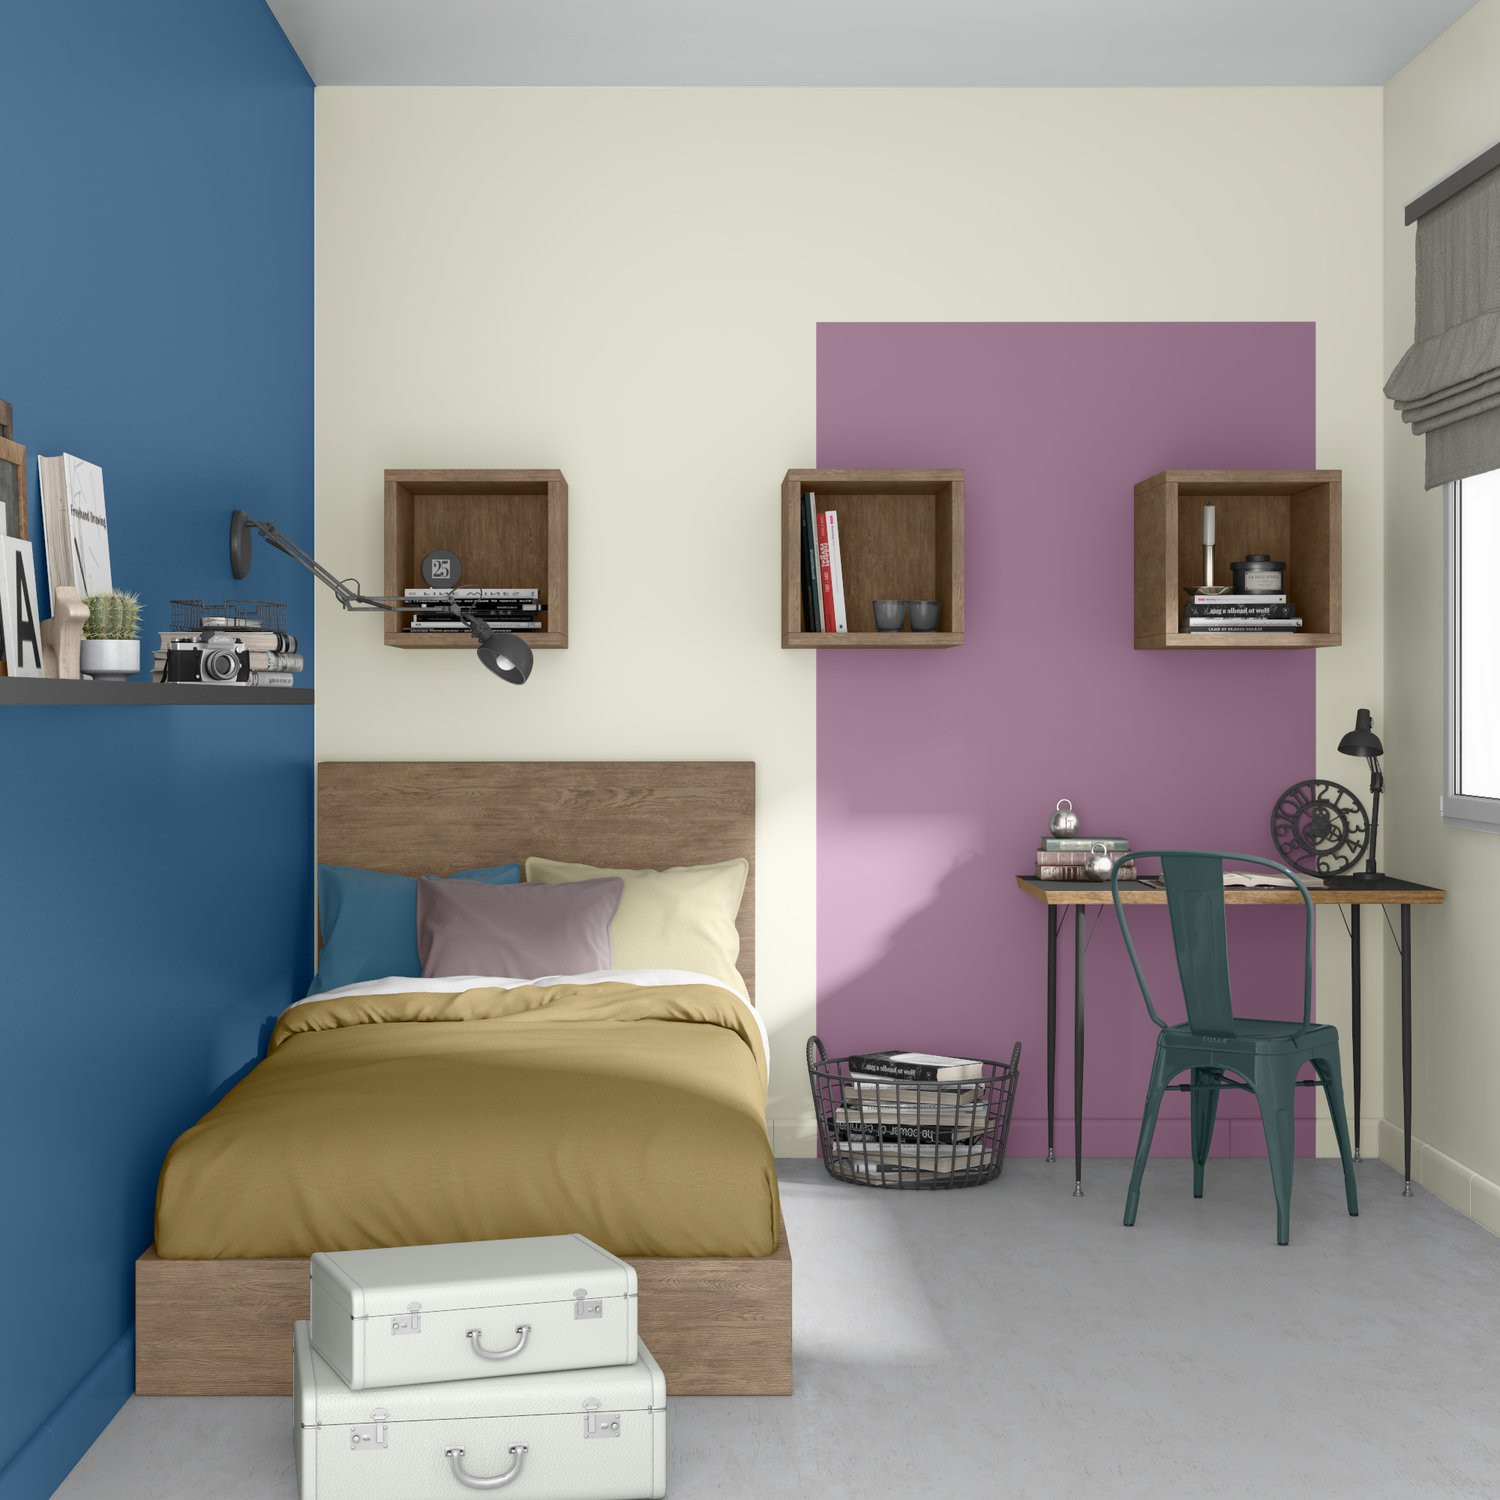 une chambre d 39 ados bleue et violette leroy merlin. Black Bedroom Furniture Sets. Home Design Ideas